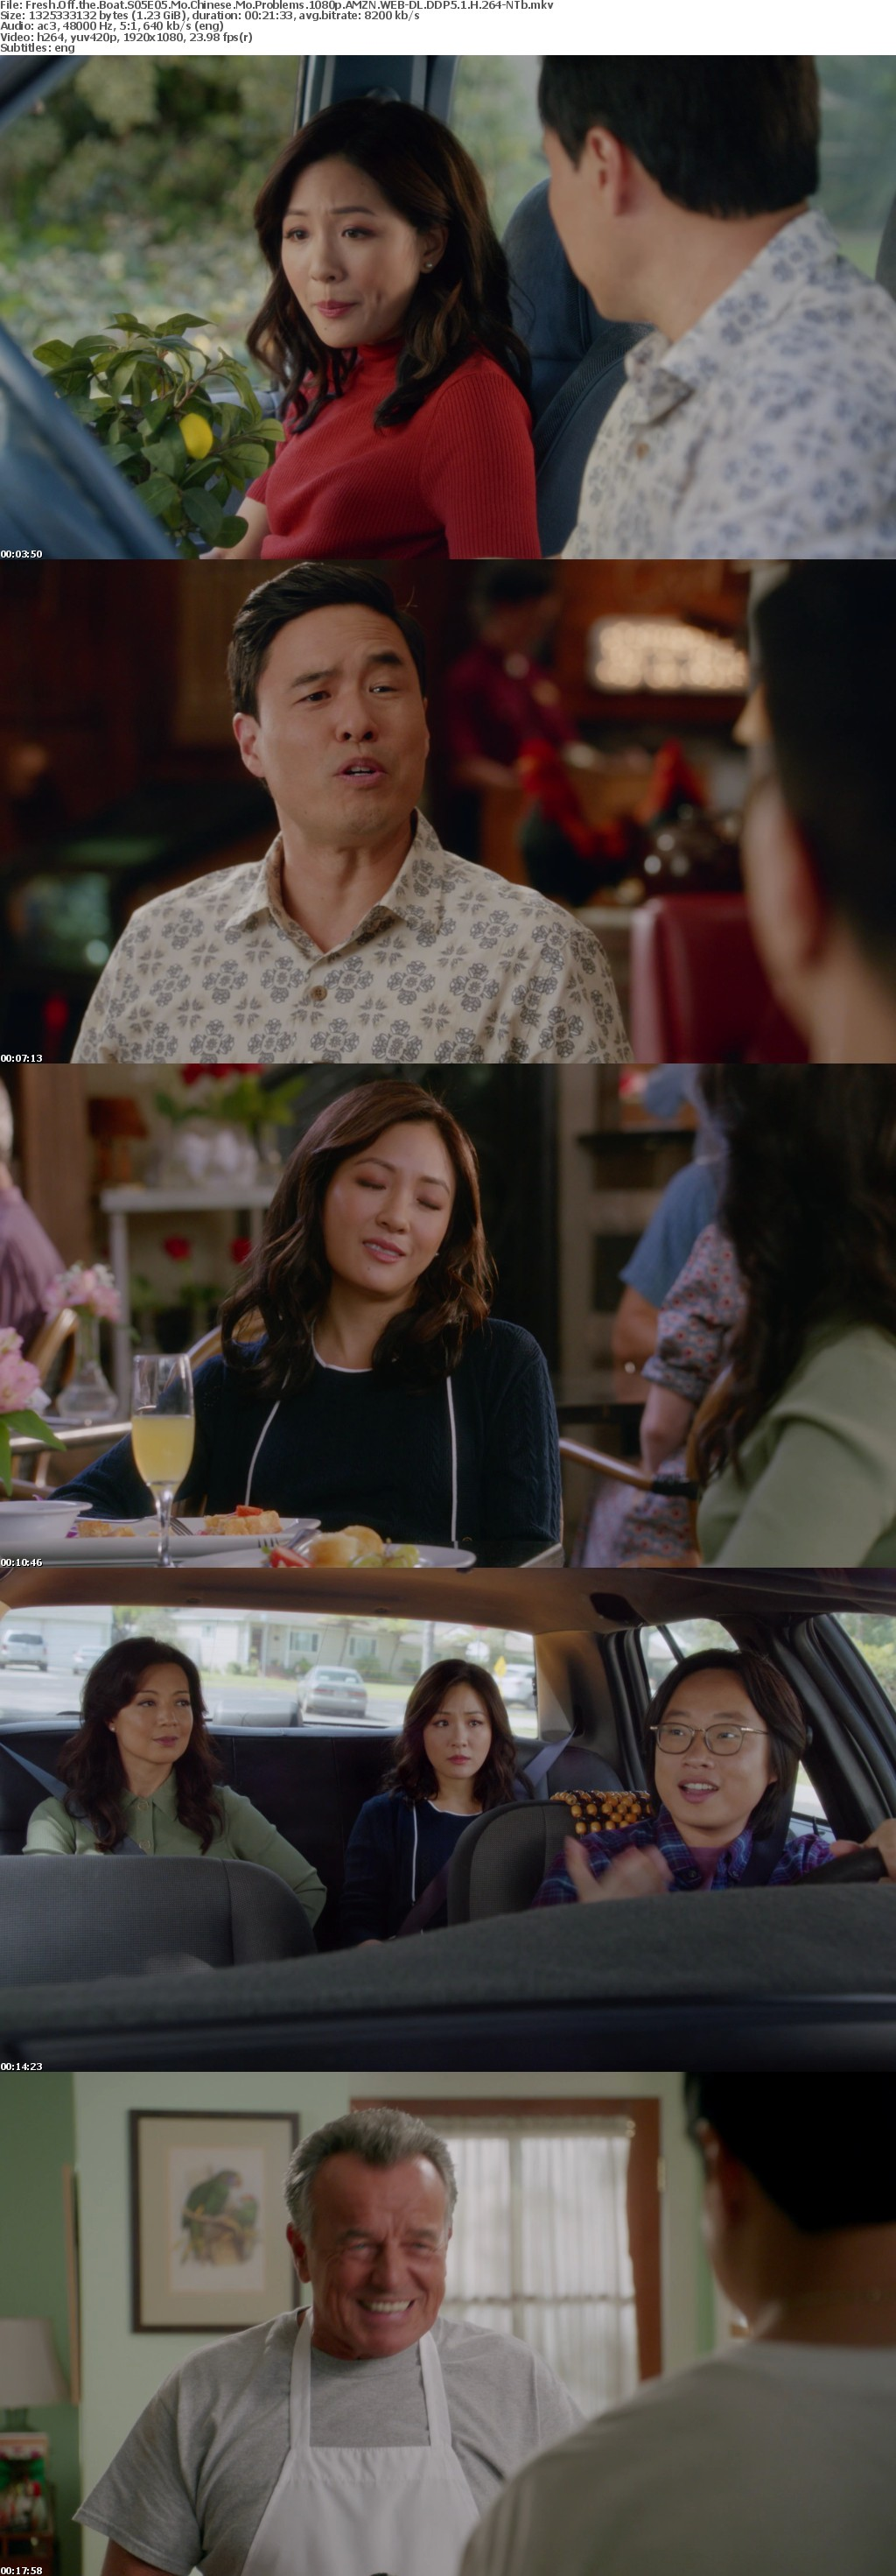 Fresh Off the Boat S05E05 Mo Chinese Mo Problems 1080p AMZN WEB-DL DDP5 1 H 264-NTb